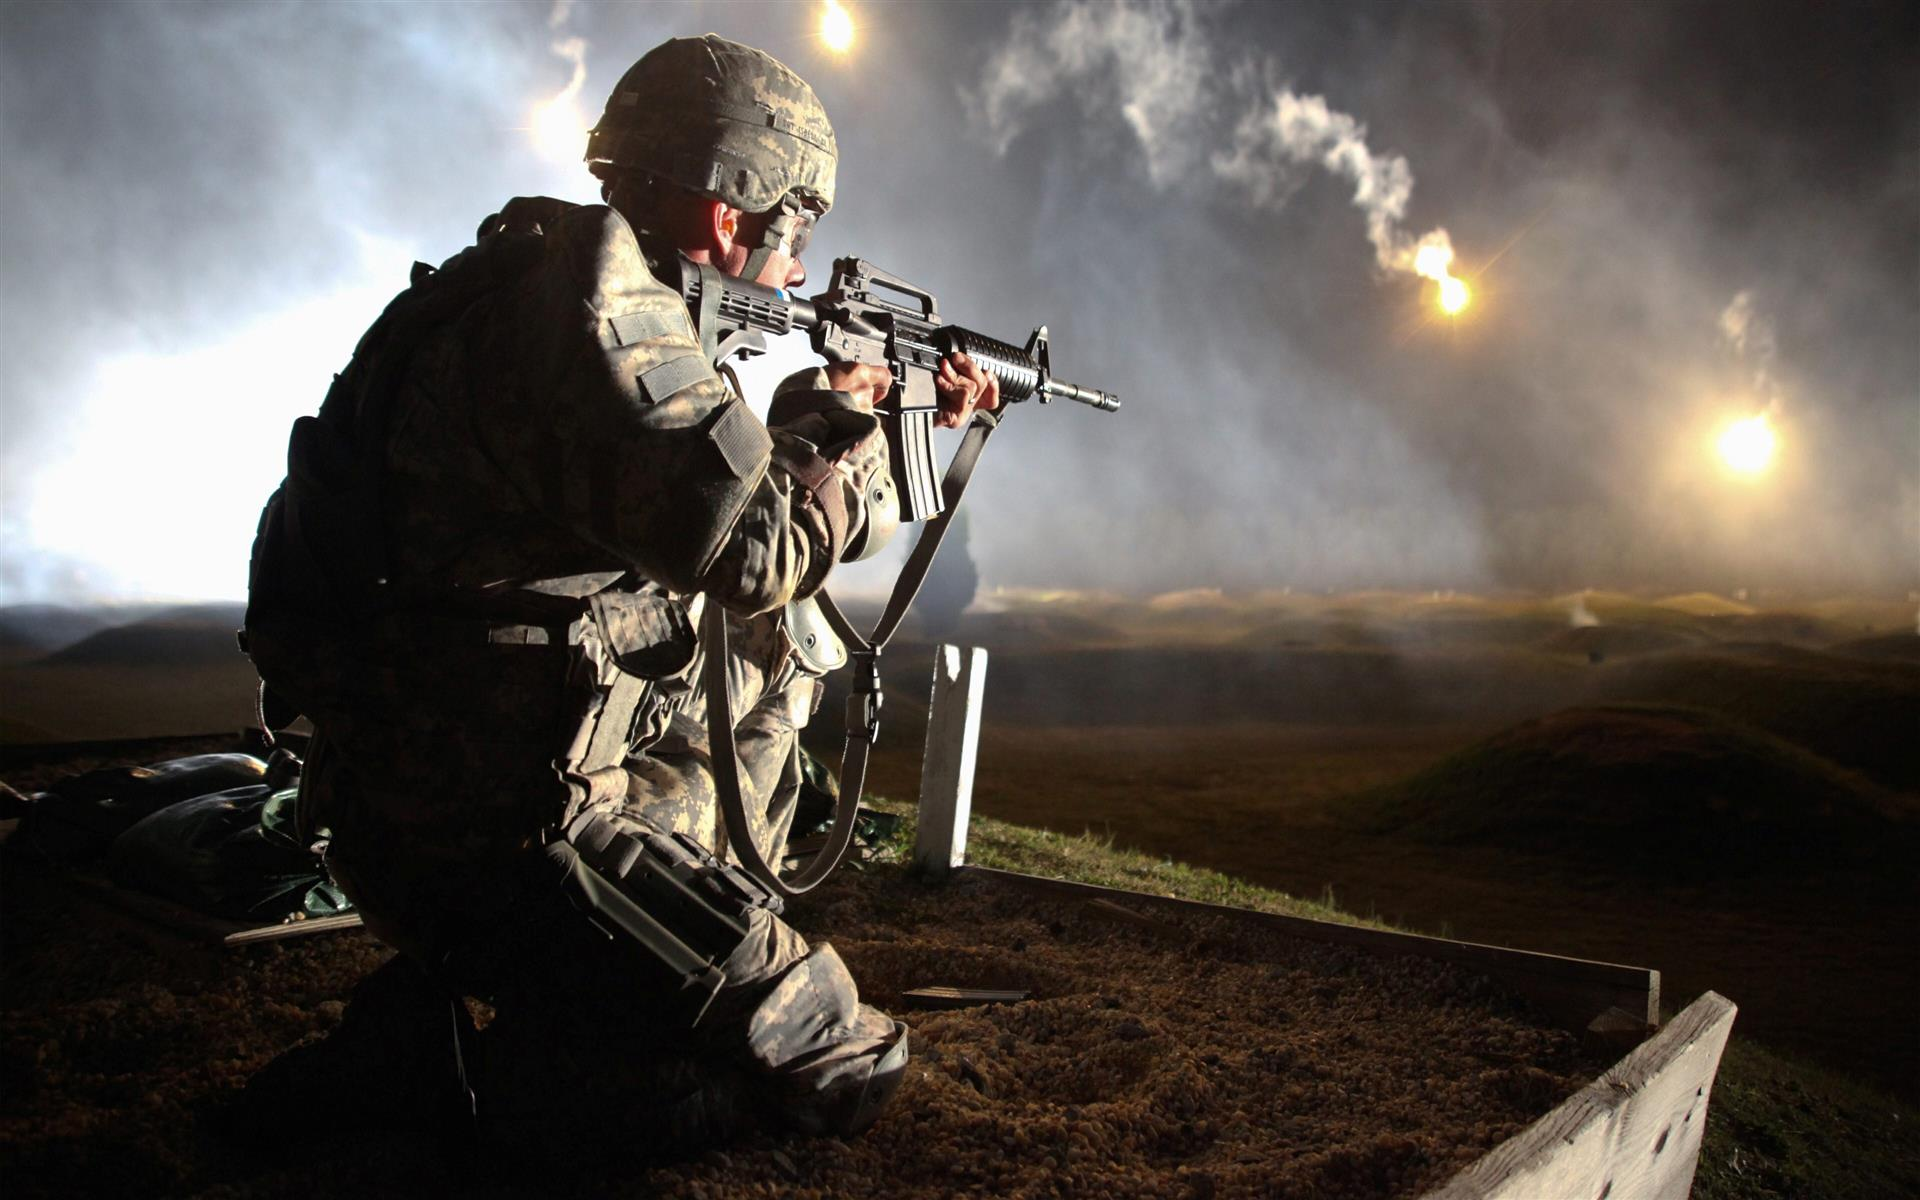 1920x1200 Army Soldier Petroling at Night Photo